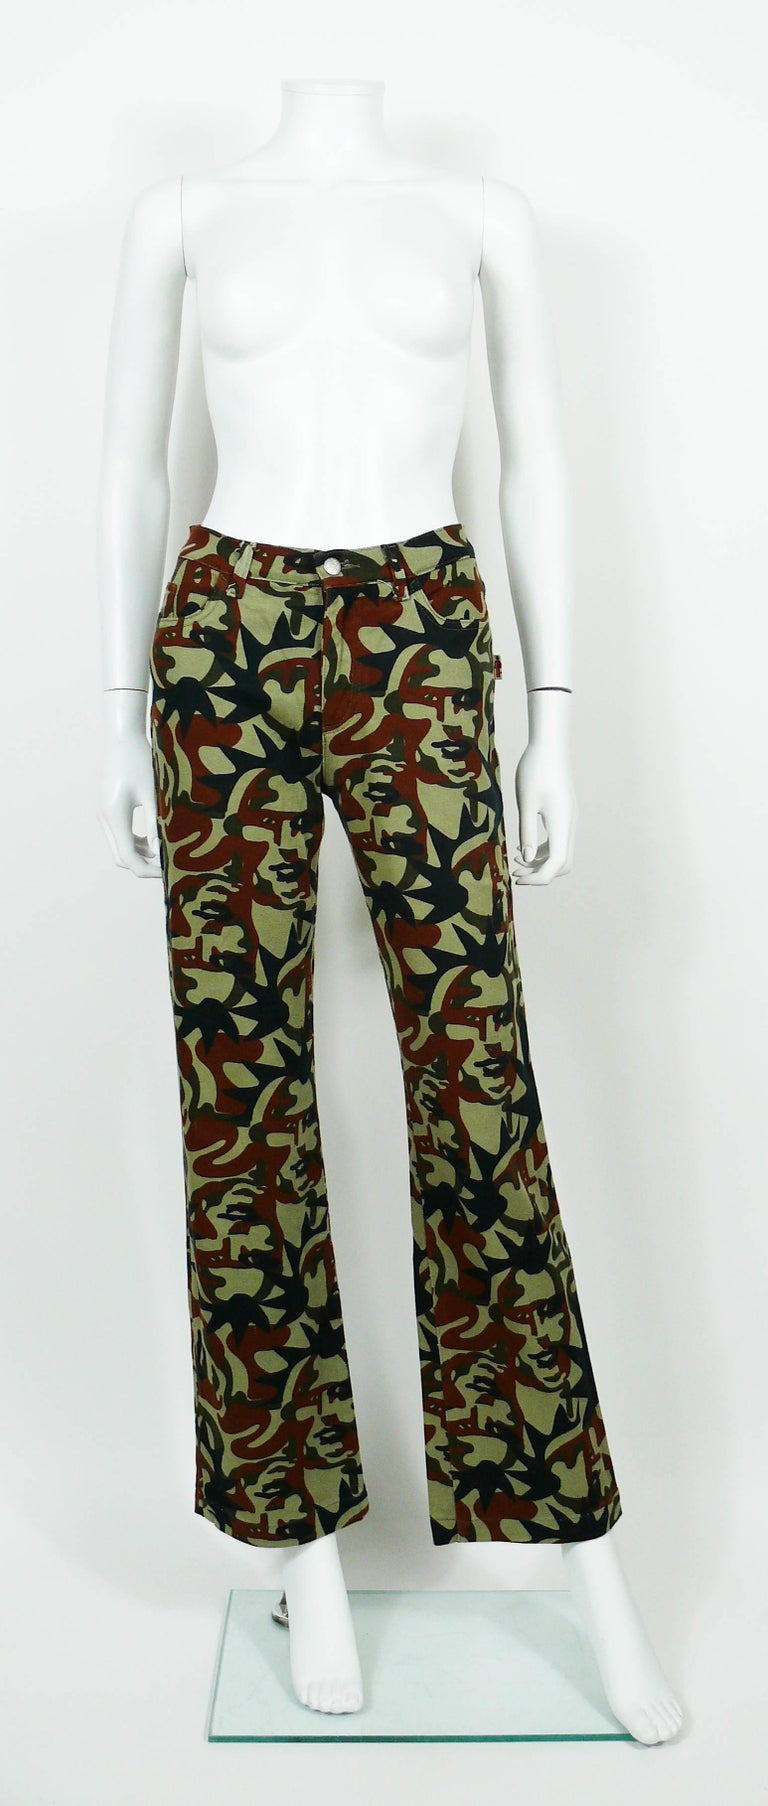 Jean Paul Gaultier Vintage Camouflage Faces Pants Trousers In Excellent Condition For Sale In French Riviera, Cote d'Azur